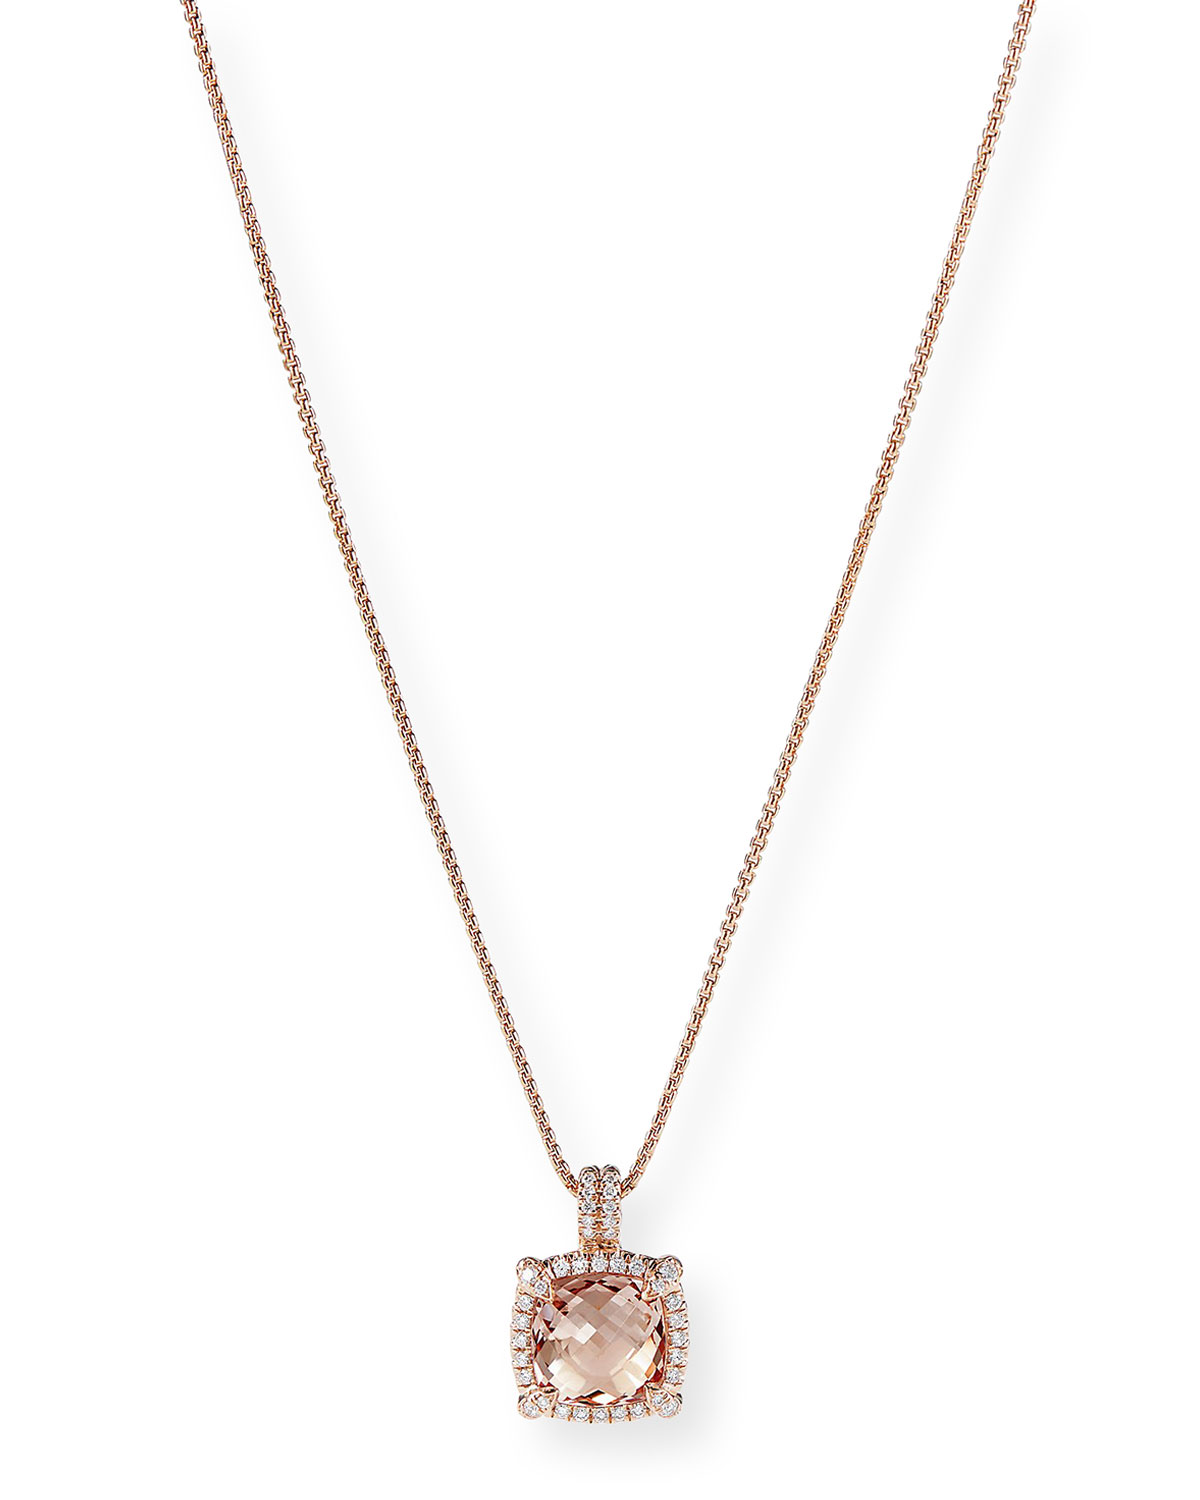 David Yurman Chatelaine 18k Rose Gold Morganite Necklace